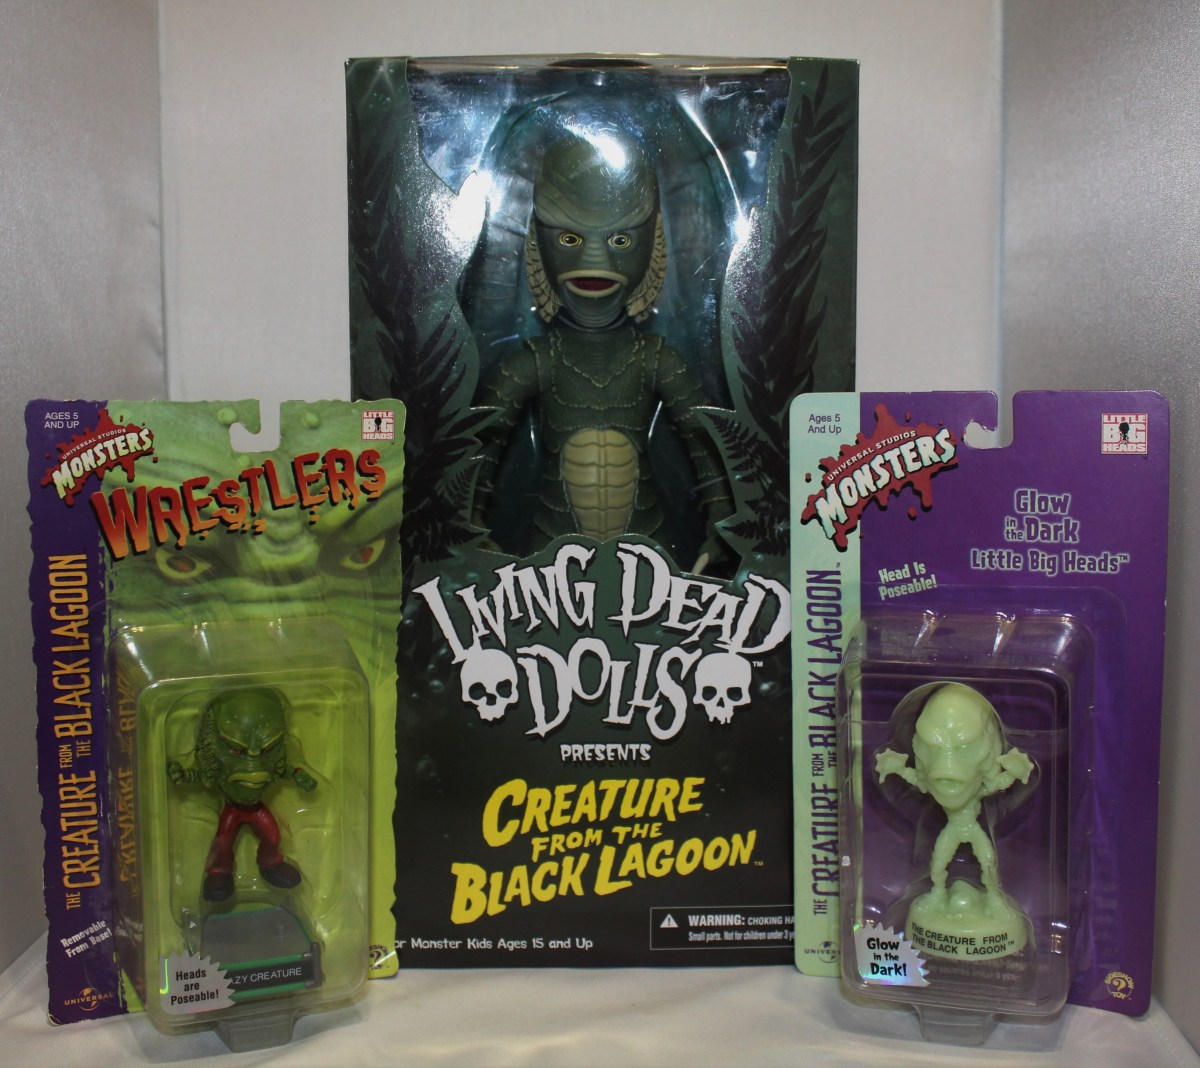 CONTEST: Win Creature from the Black Lagoon Prize Pack!